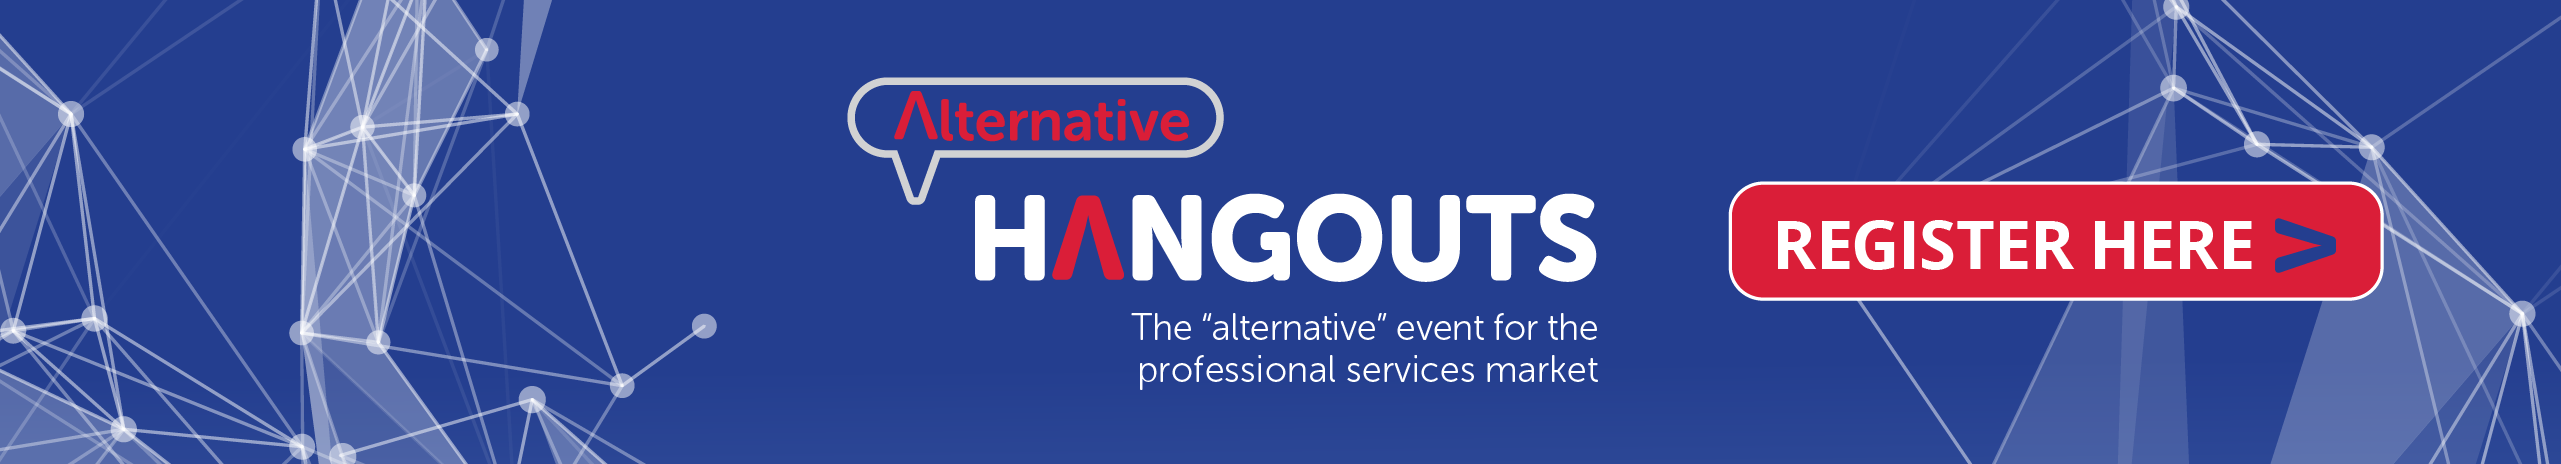 ANNOUNCING ALTERNATIVE HANGOUTS – a new digital community space for the professional services sector to socialise, learn, network, interact. We will be broadcasting LIVE every week to our professional services communities. Join us to connect with experts, peers, colleagues and friends from like-minded firms – to get advice, share experiences and find solutions. Learn more here